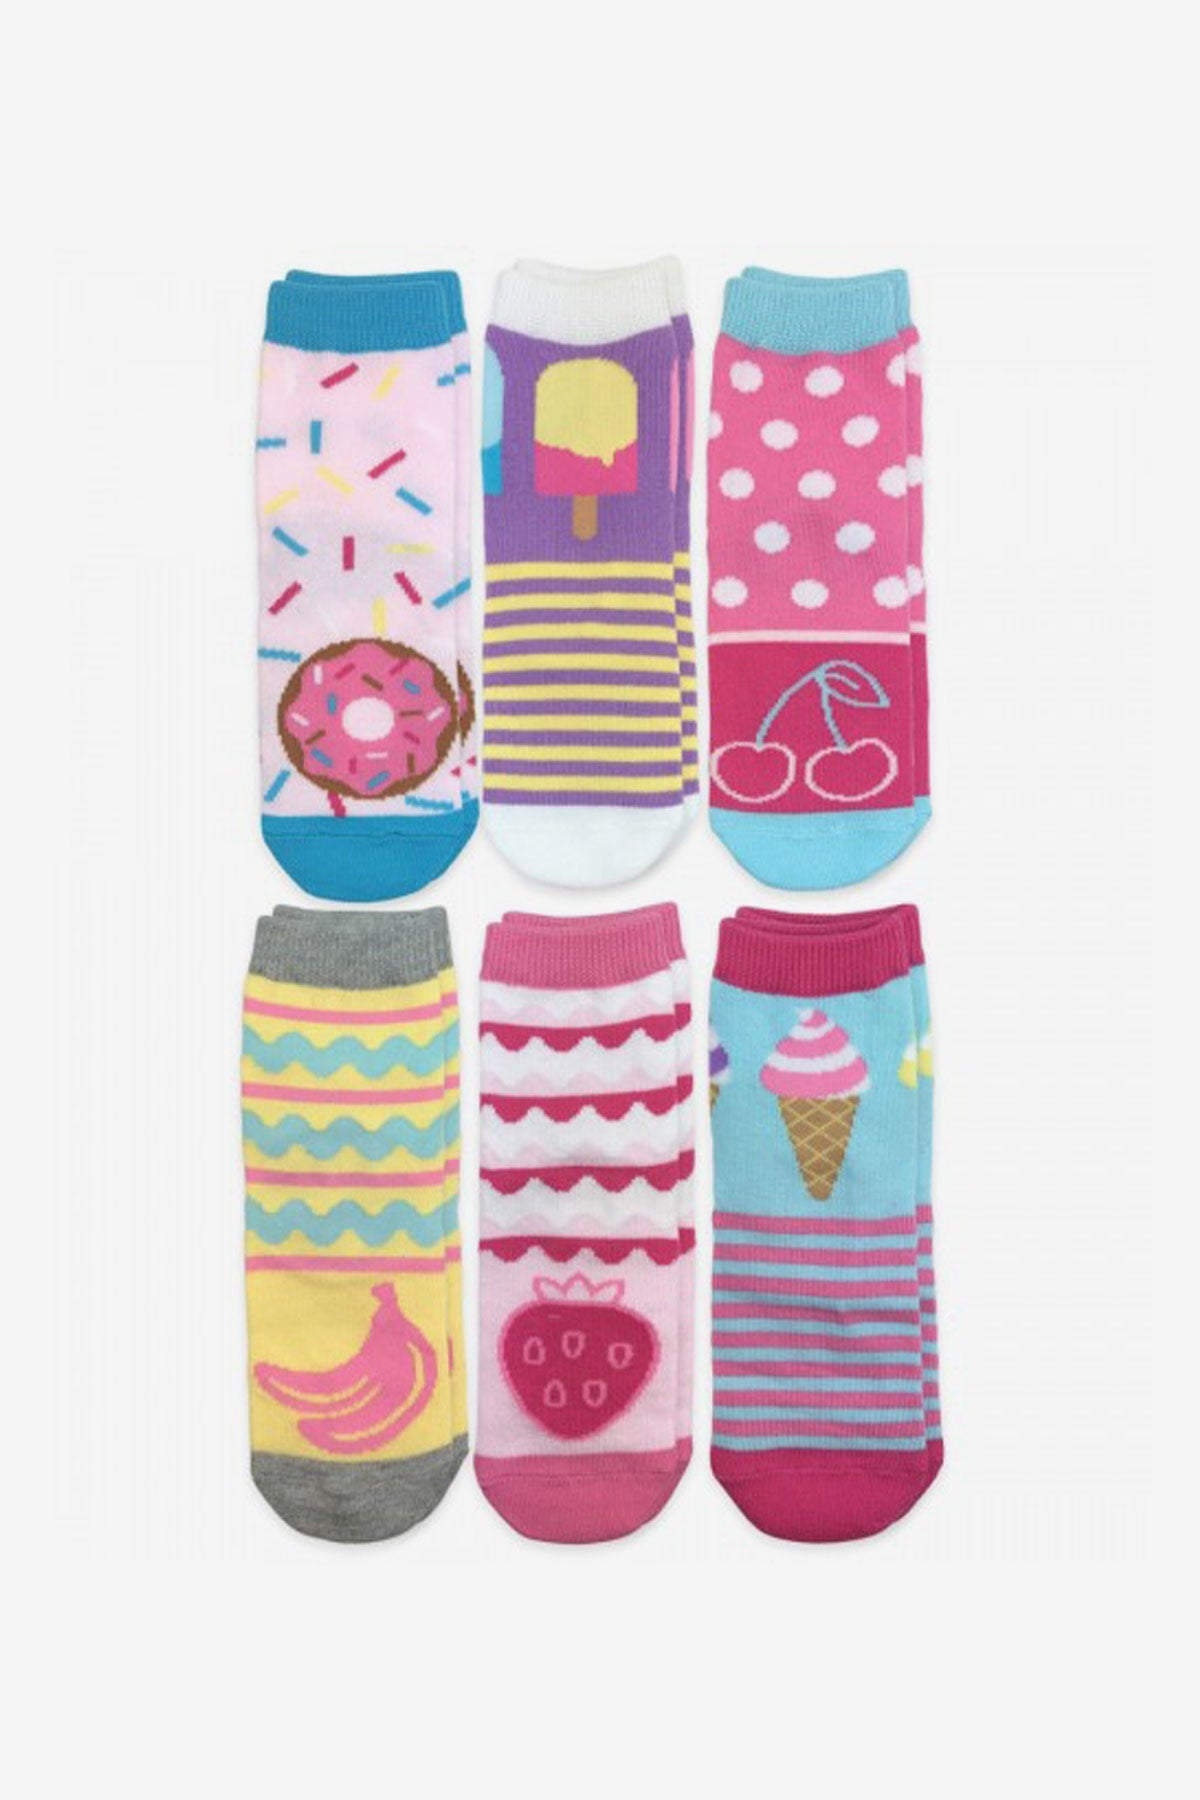 Jefferies Socks Sweet Treats Crew Socks 6-Pack